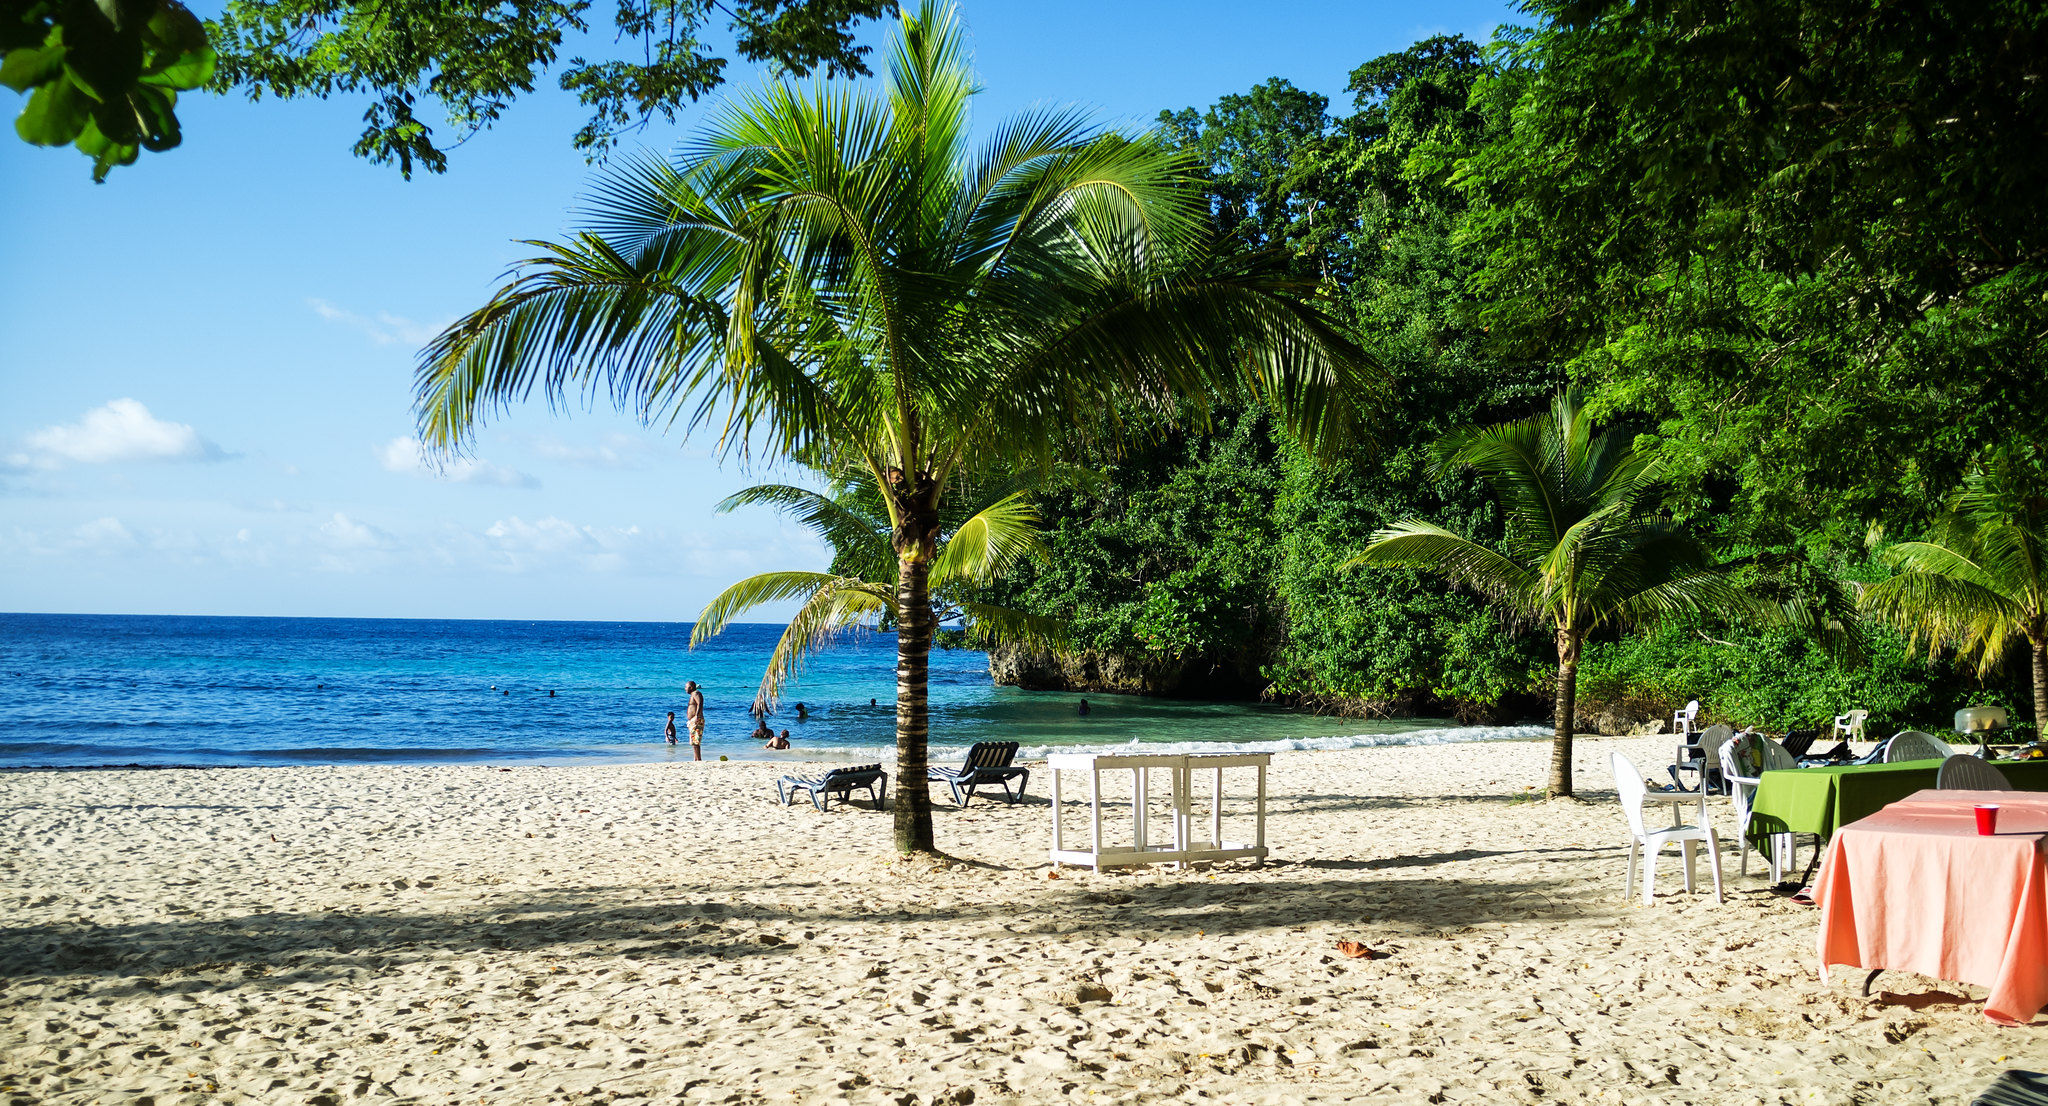 Frenchman's Cove in Port Antonio, Jamaica - photo by nigel burgher under CC BY 2.0